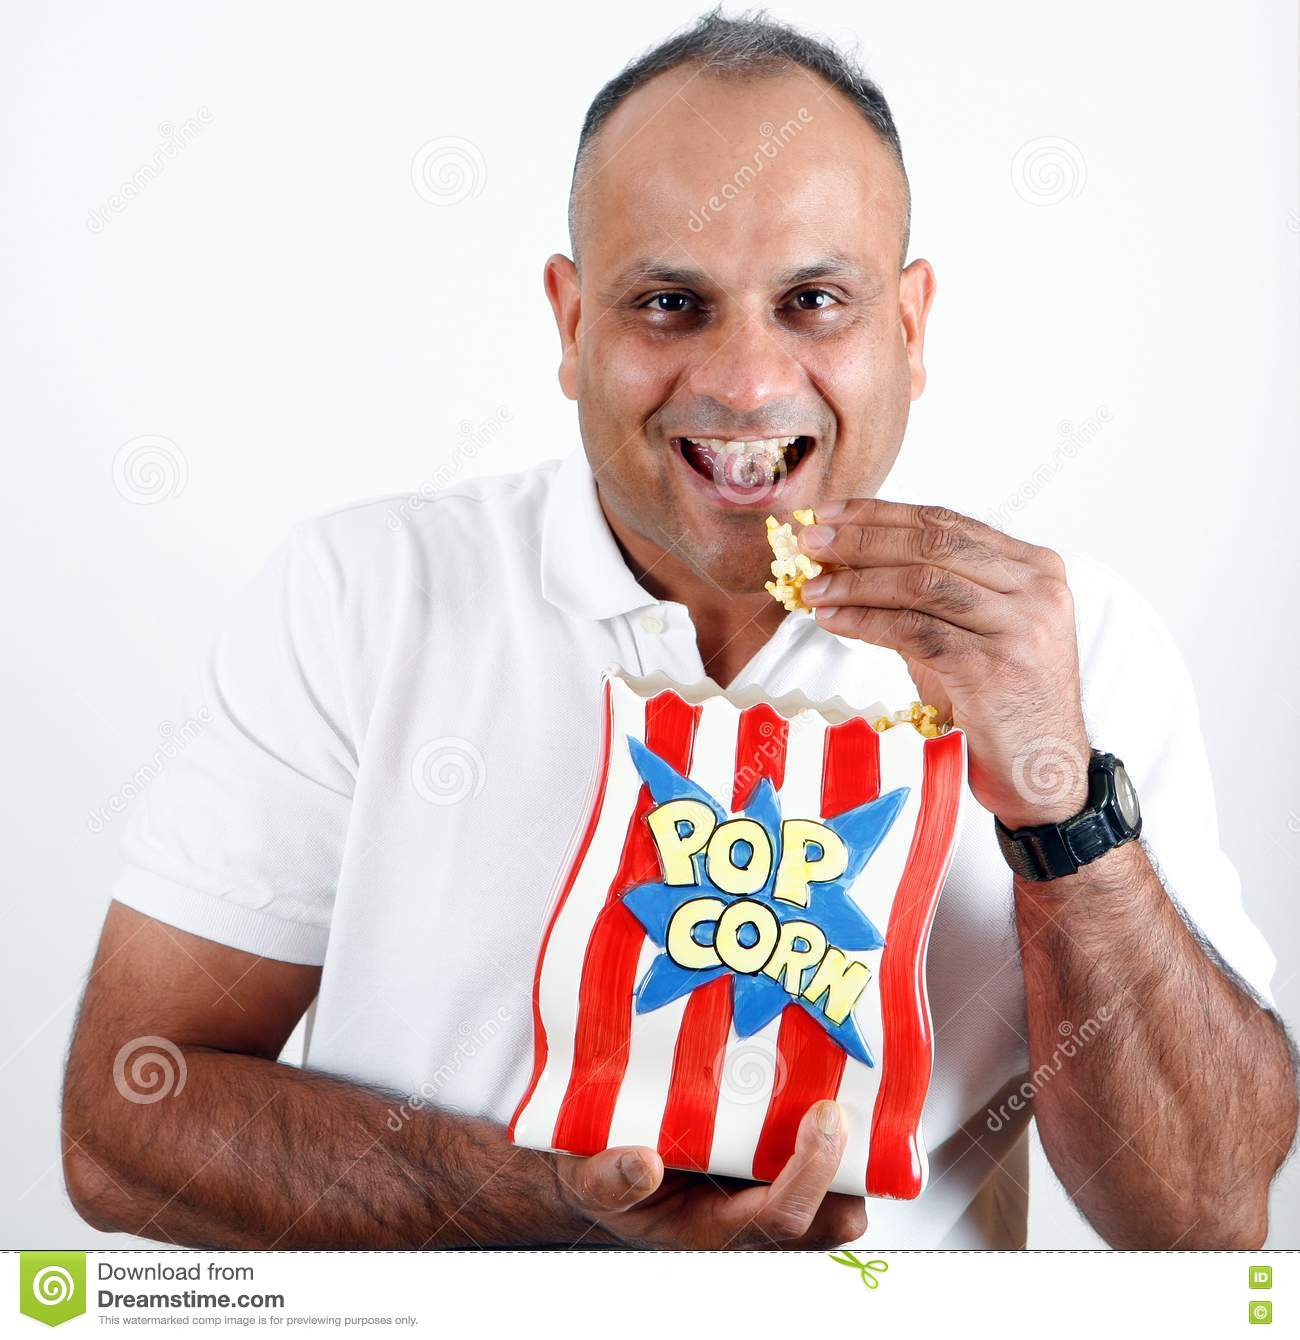 office-worker-eating-popcorn-15568428.jp